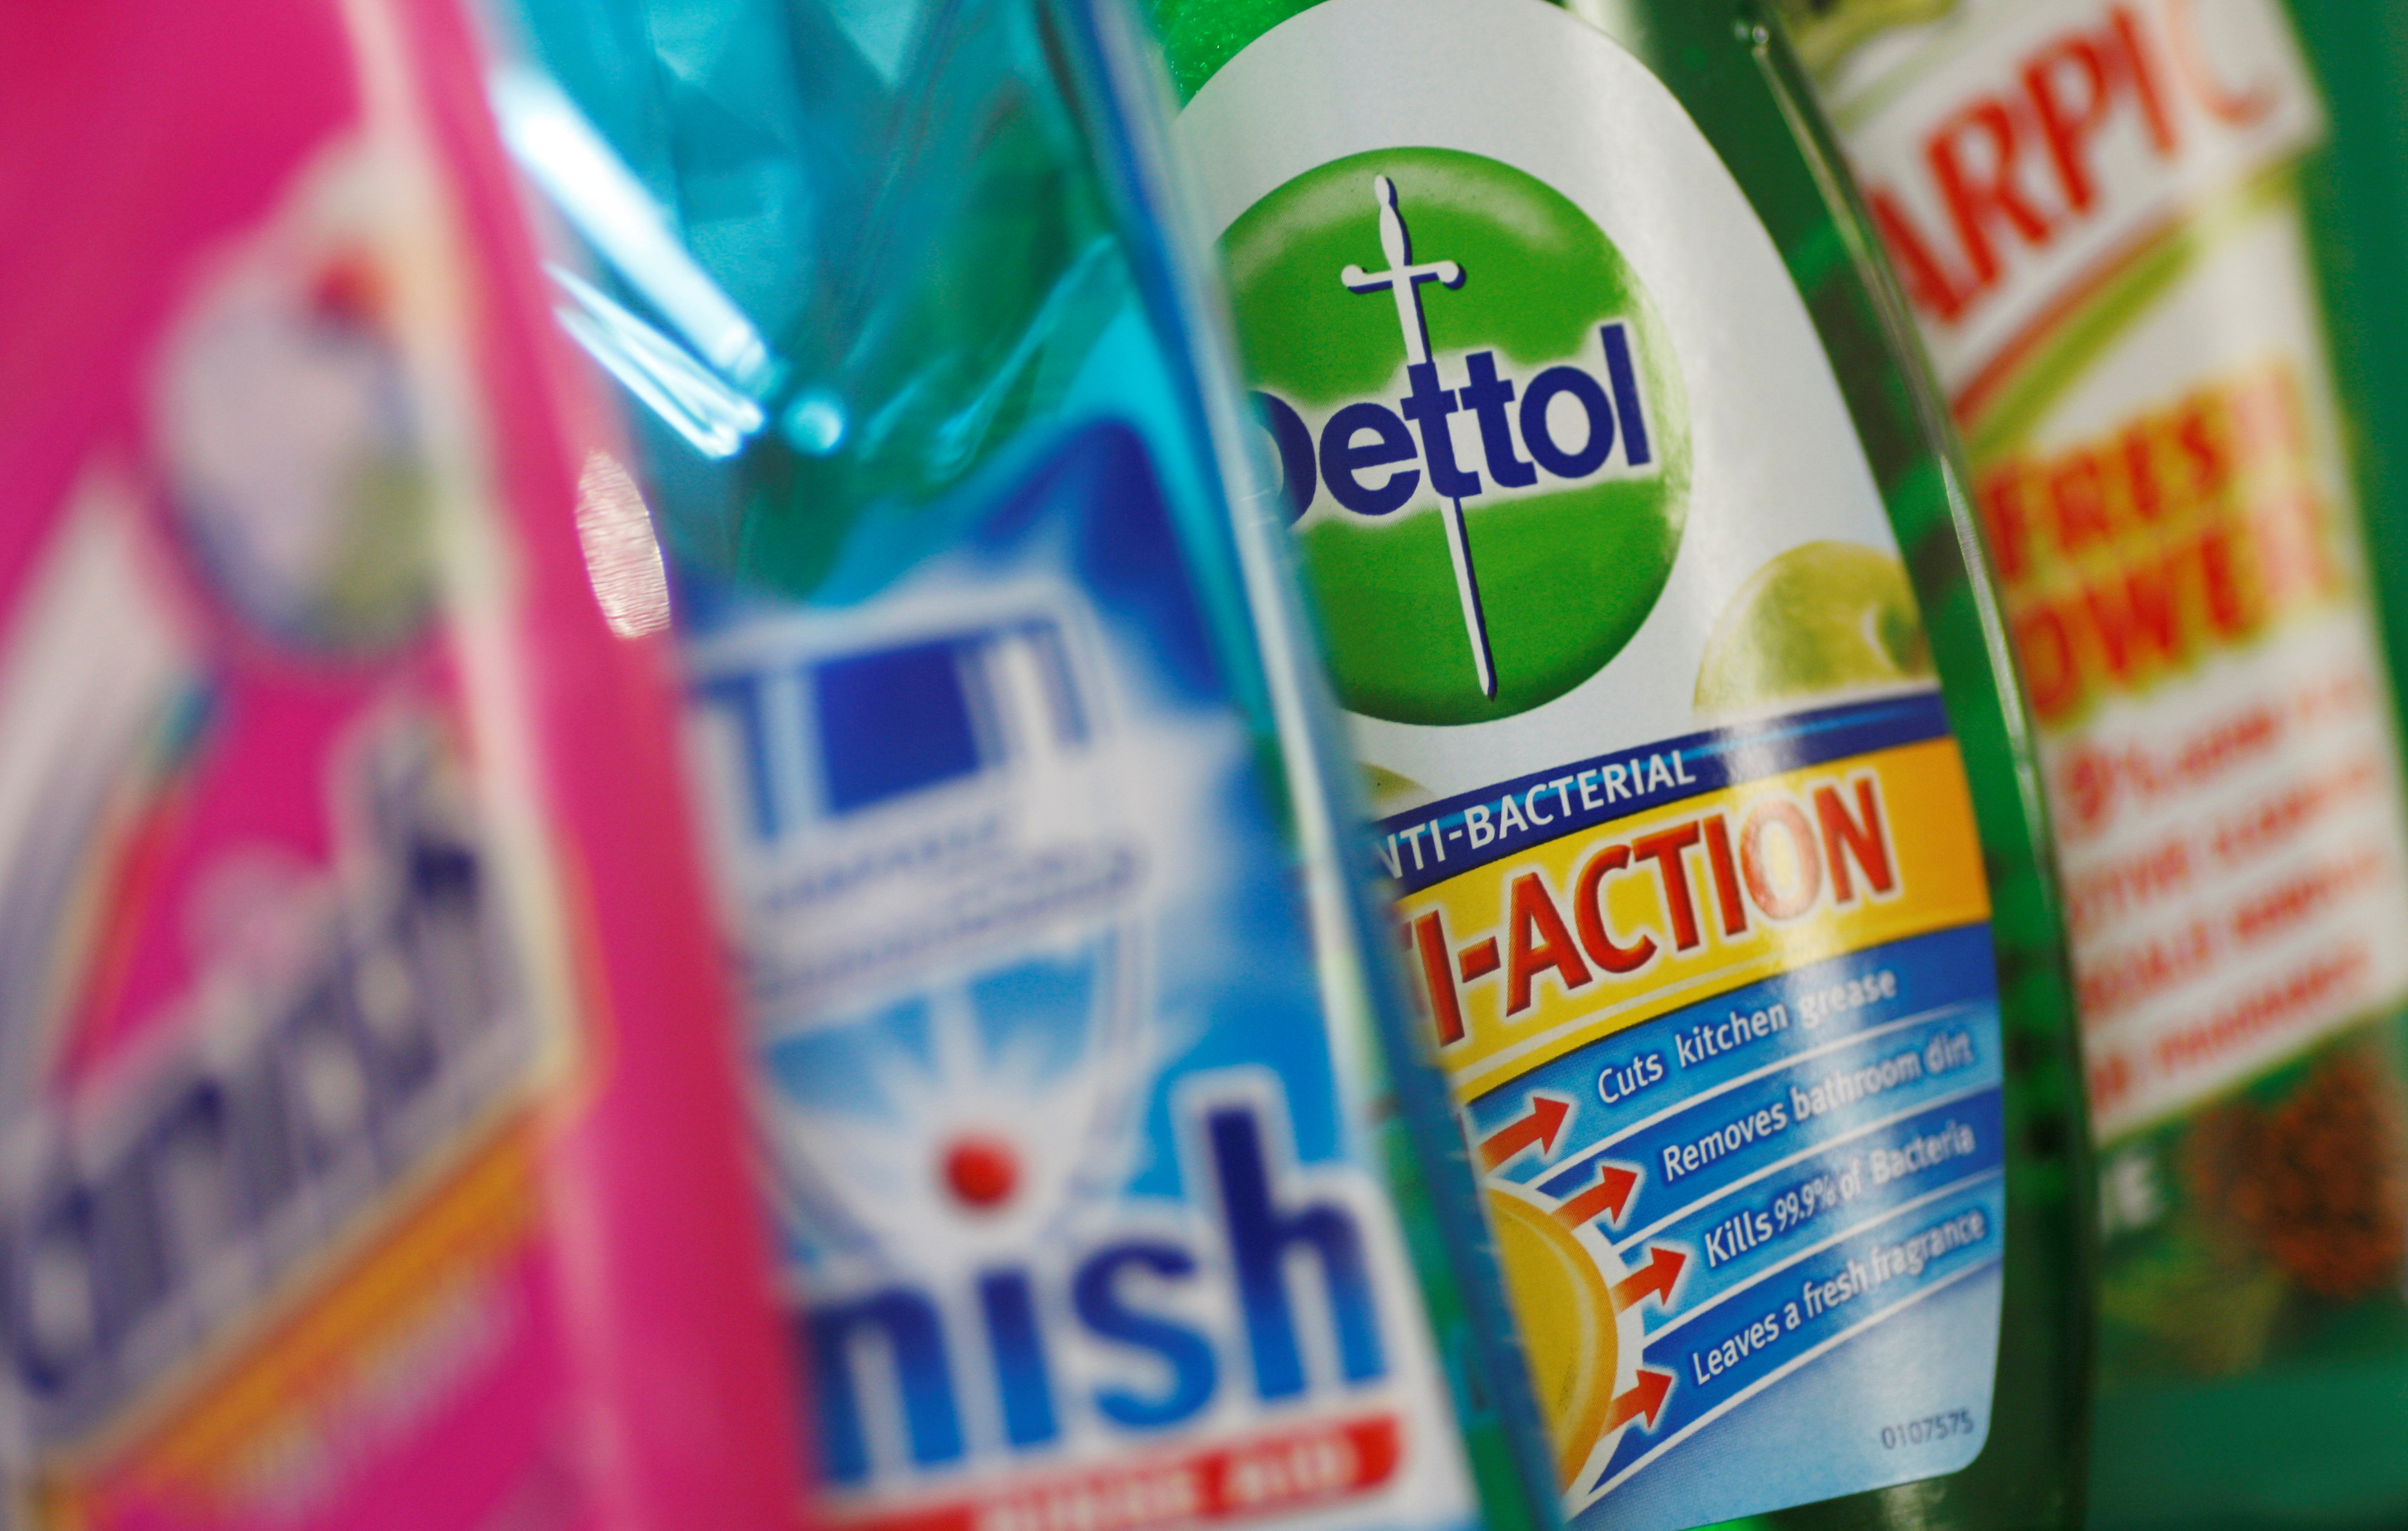 Reckitt Benckiser FY Profit Rises, To Buy Mead Johnson For $16.6 Bln